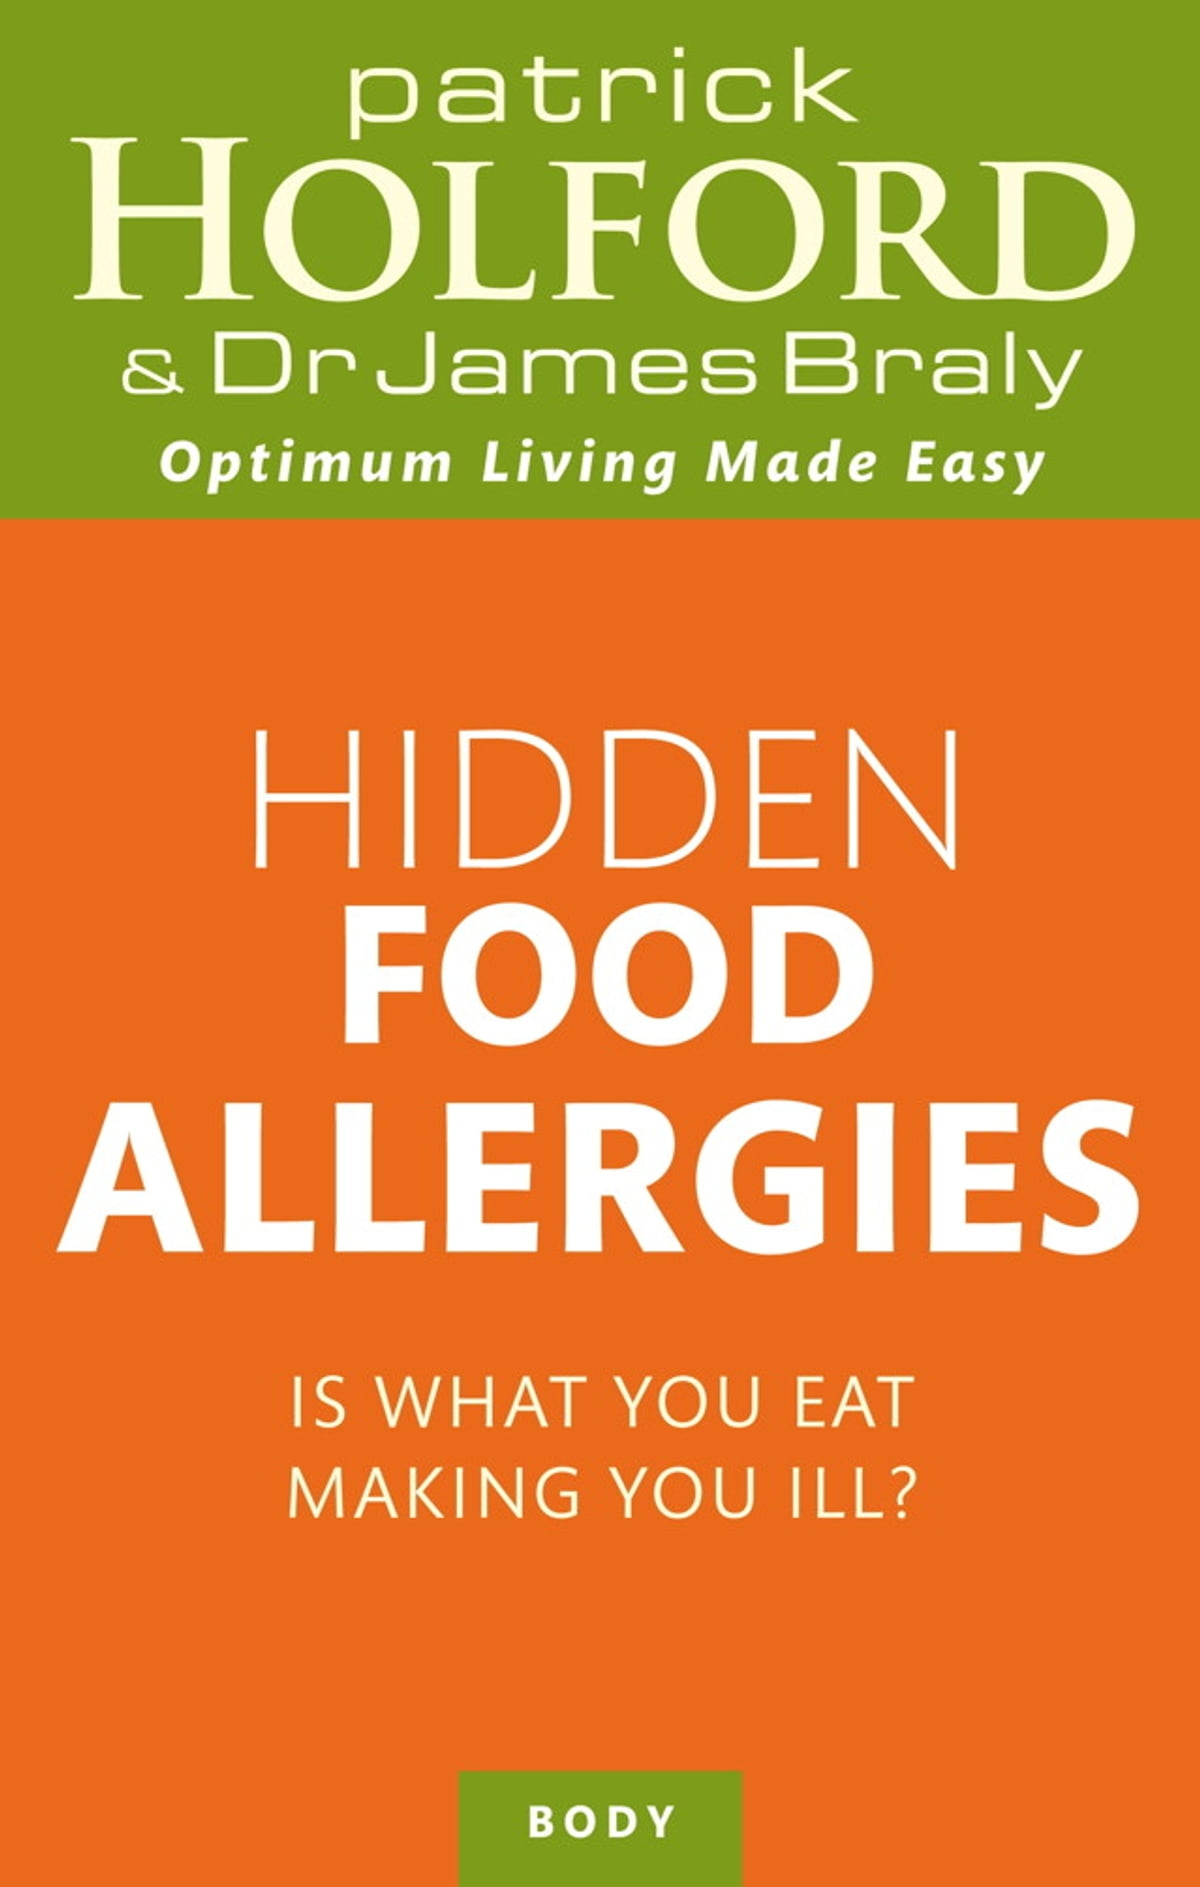 8 Ways To Outsmart Your Allergies 8 Ways To Outsmart Your Allergies new pictures